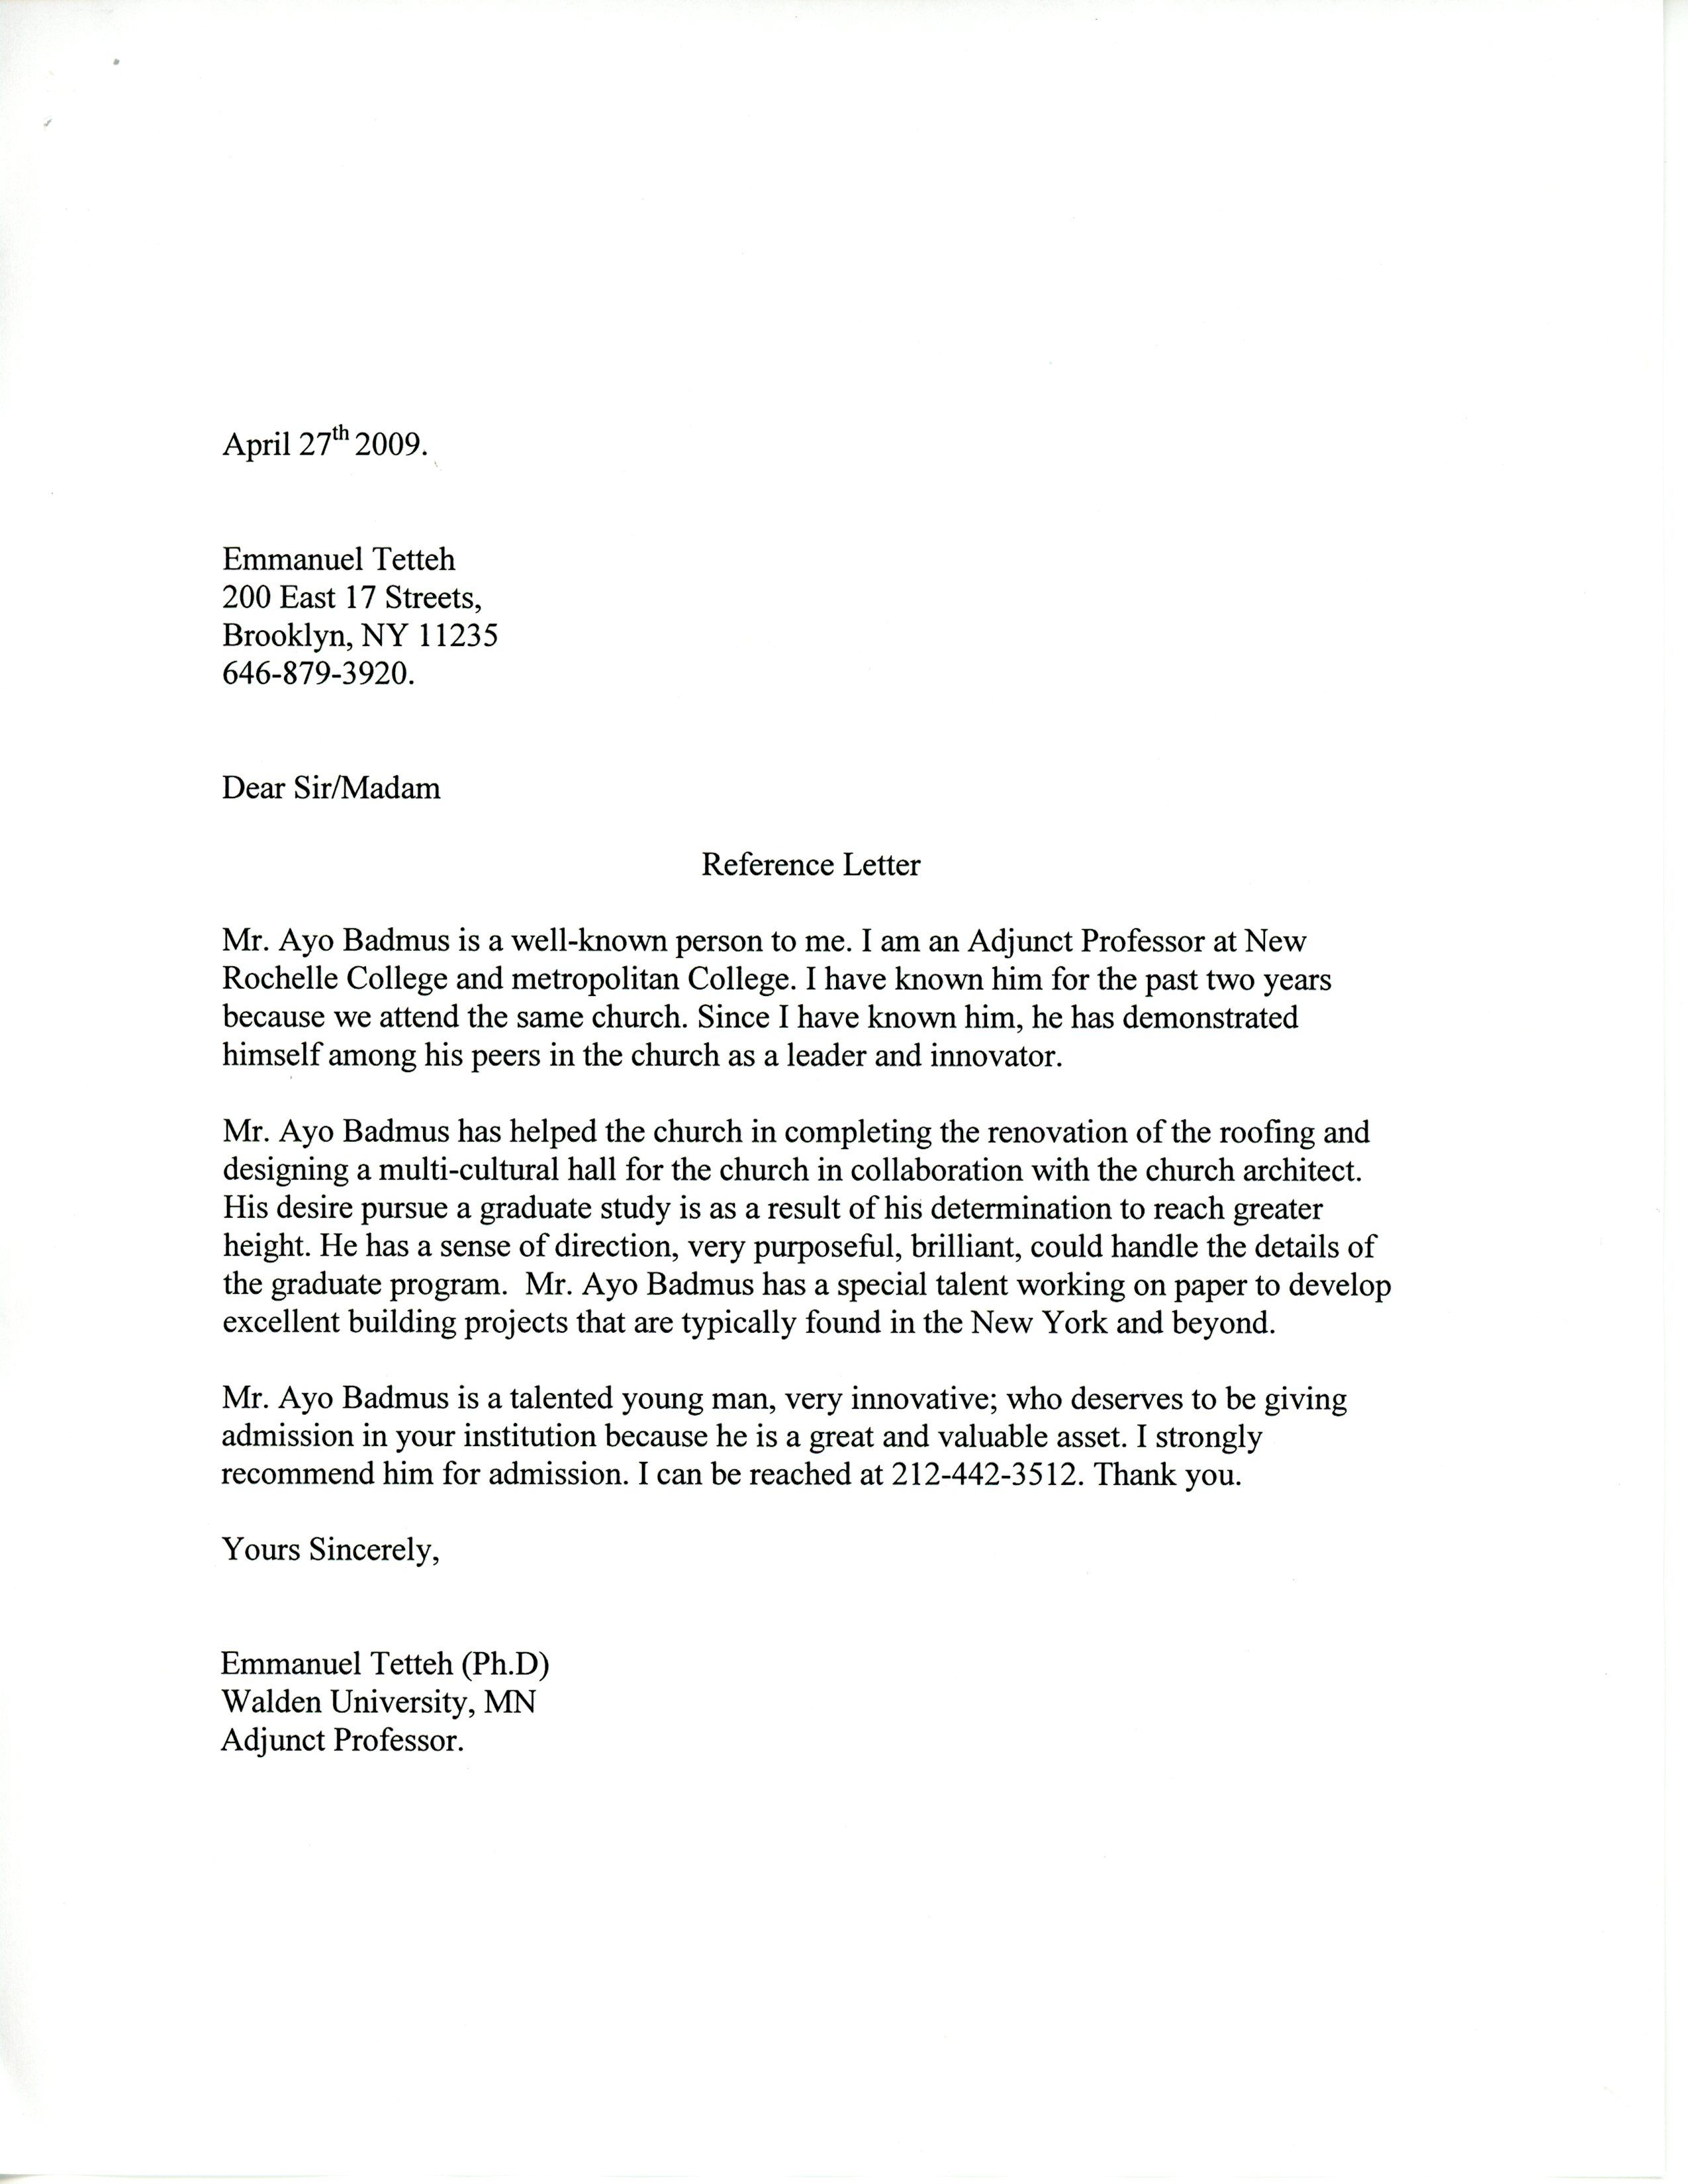 green card application cover letters